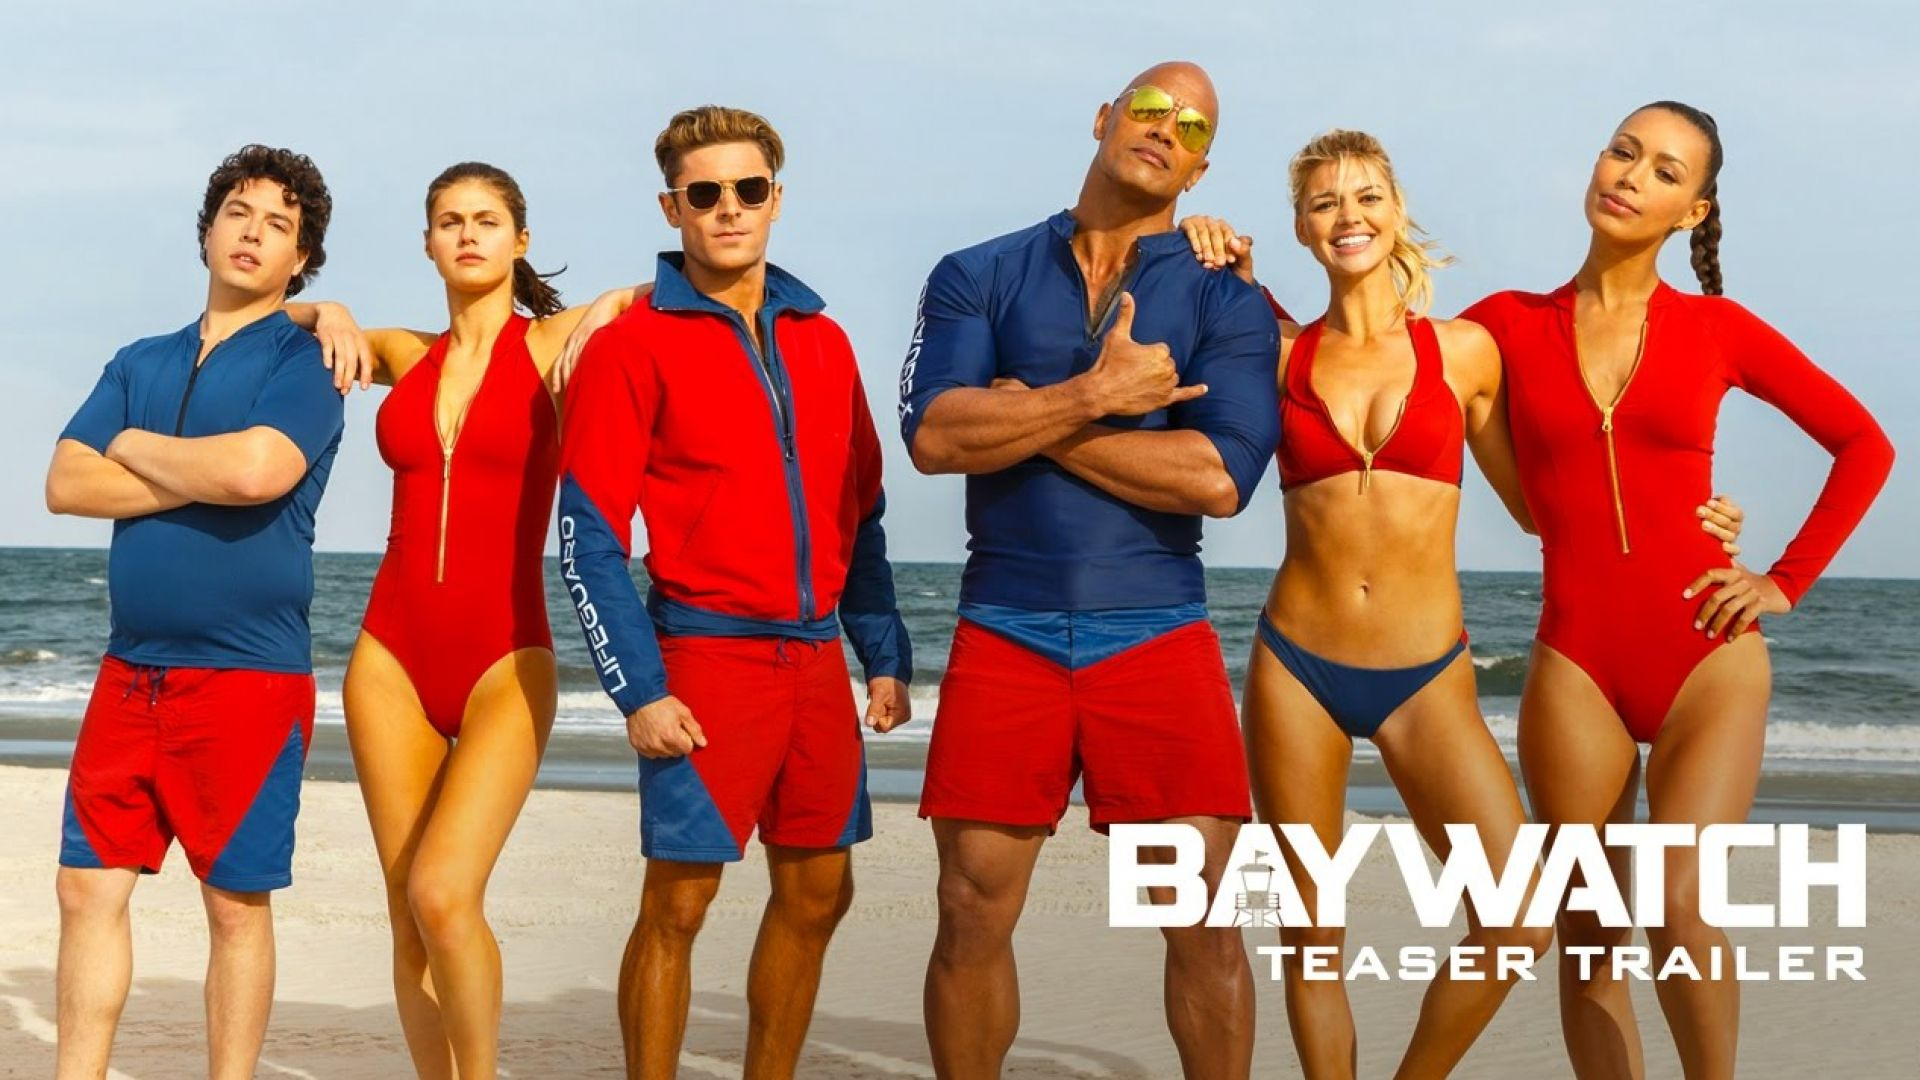 Baywatch Teaser Trailer (2017)